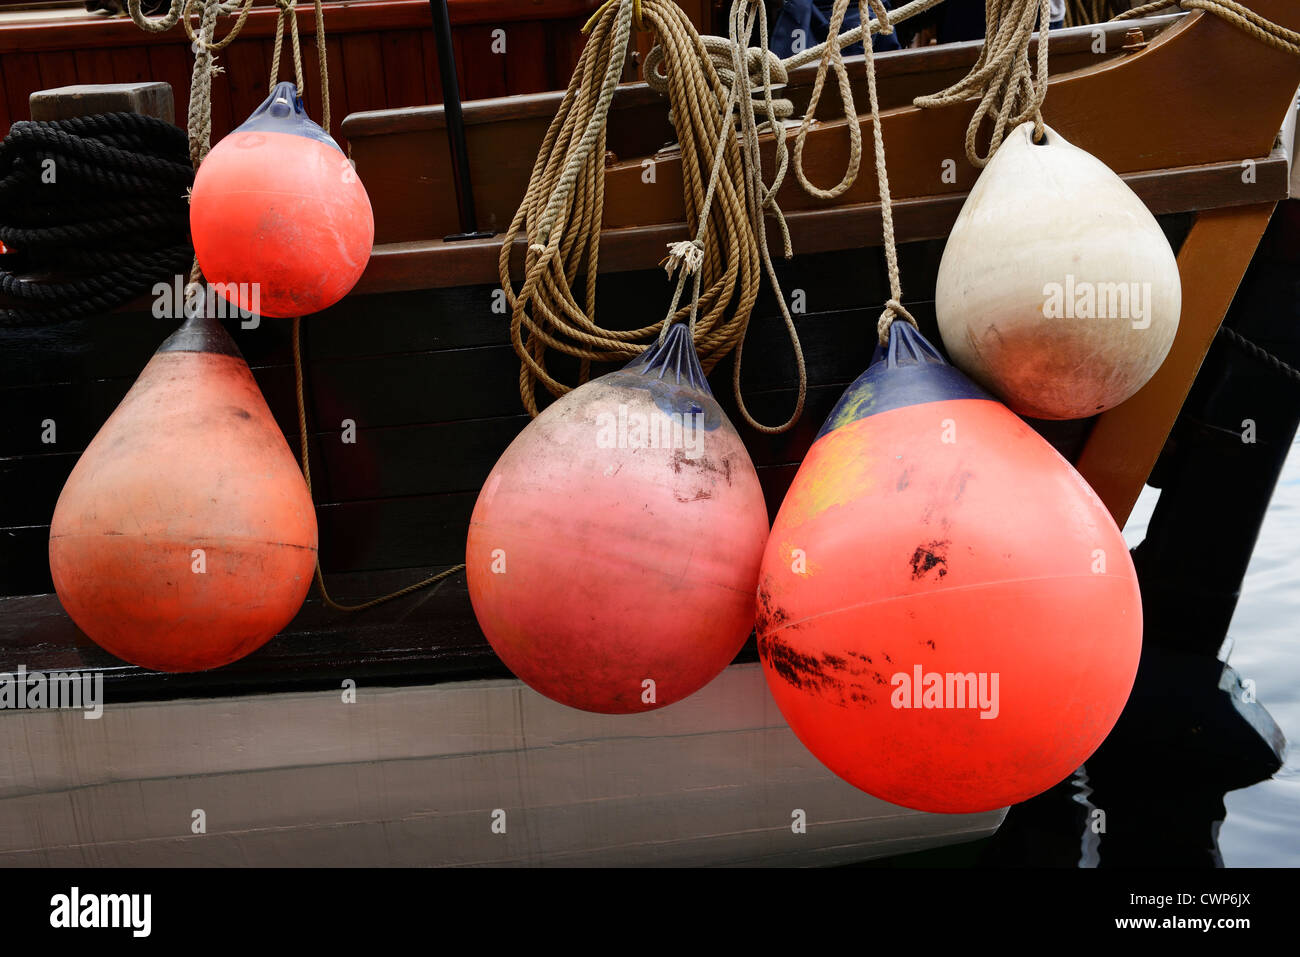 Mooring buoys on the side of a traditional wooden tall ship - Stock Image